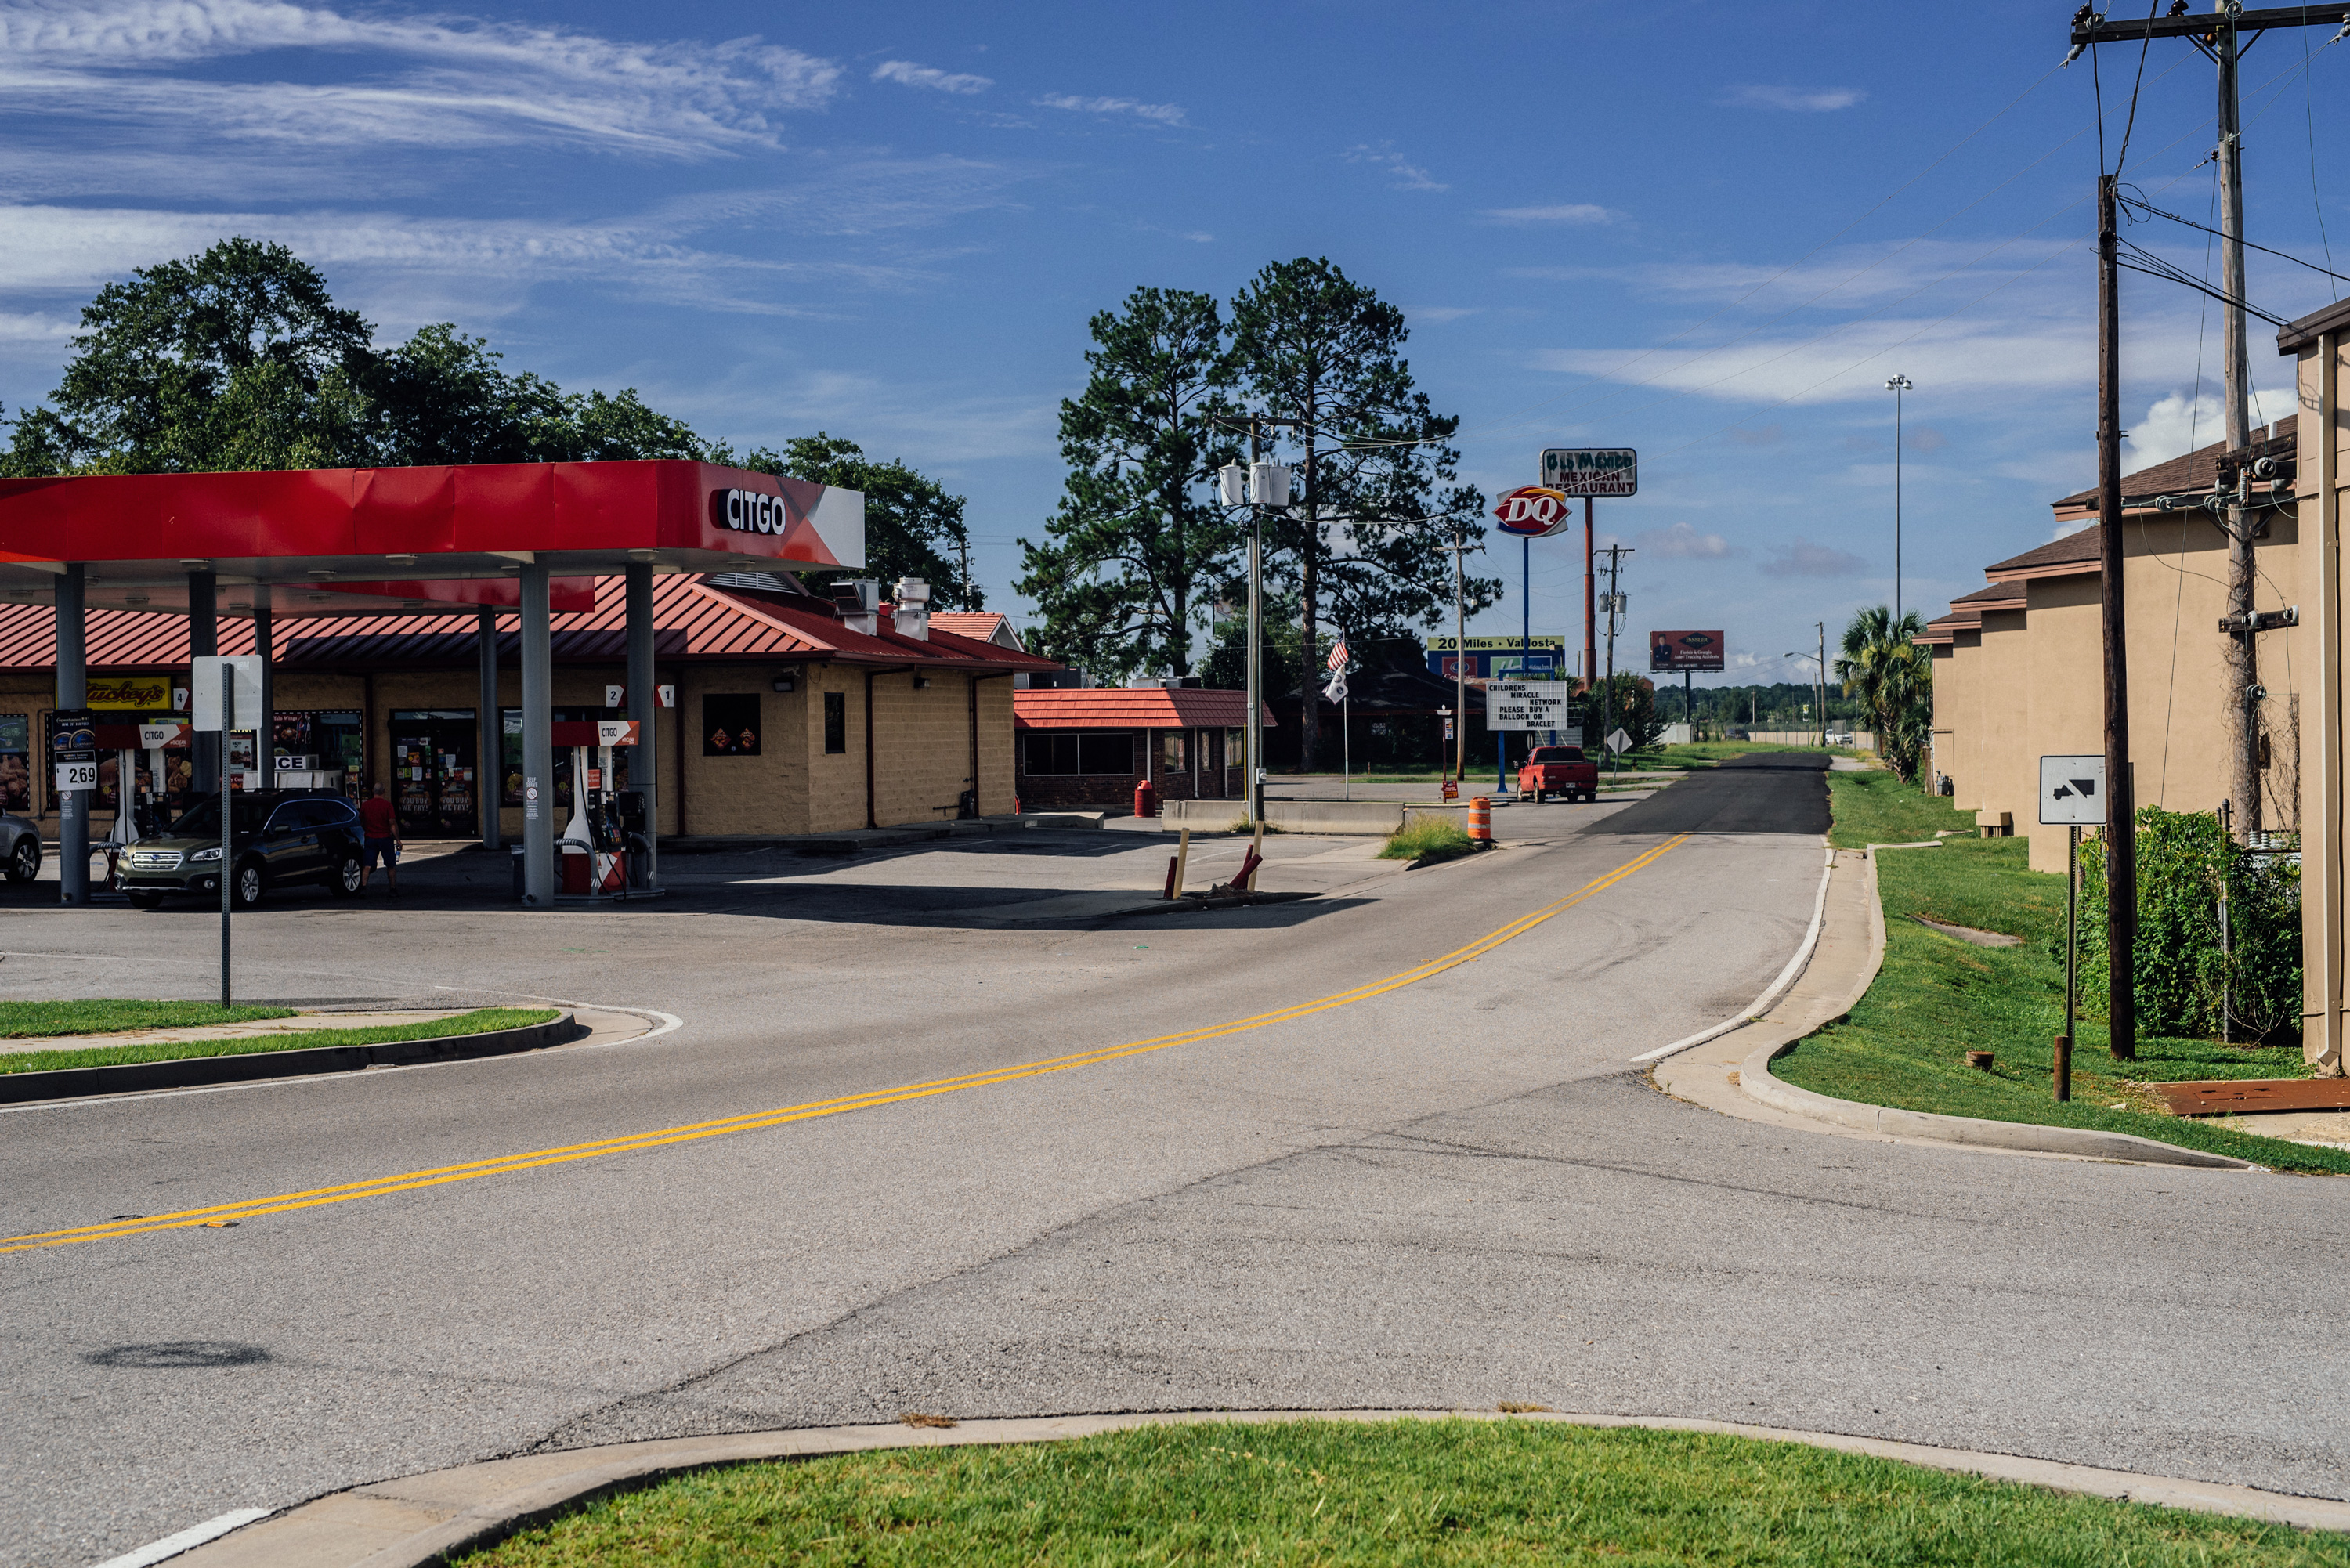 The view from where Virginia Tatem and Lee Grimes were standing when Virginia claims to have heard the gunshot at  Taco Bell and see Devonia's car go into an abandoned Pizza Hut parking lot. Looking south.